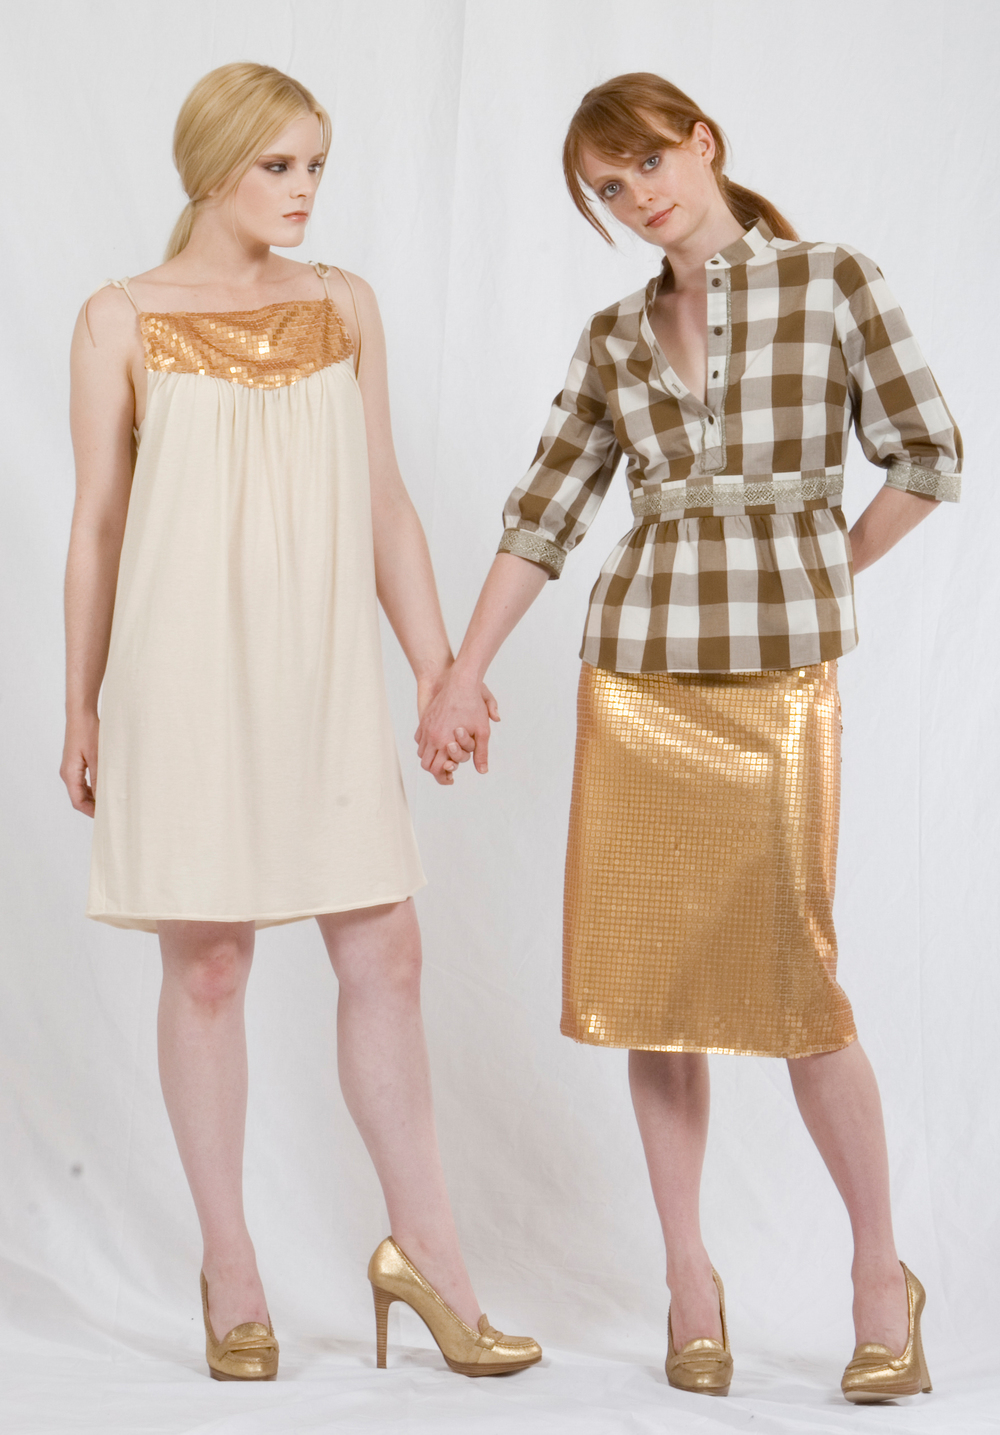 Triangle Dress in Ecru Jerseyw/ Gold Sequined Yoke & Faux Leather Ties.   On the right:   Banded Tunic Shirt in Cotton Gingham w/ Metallic Lace Details  A-Line Skirt in Gold Sequined Tulle.